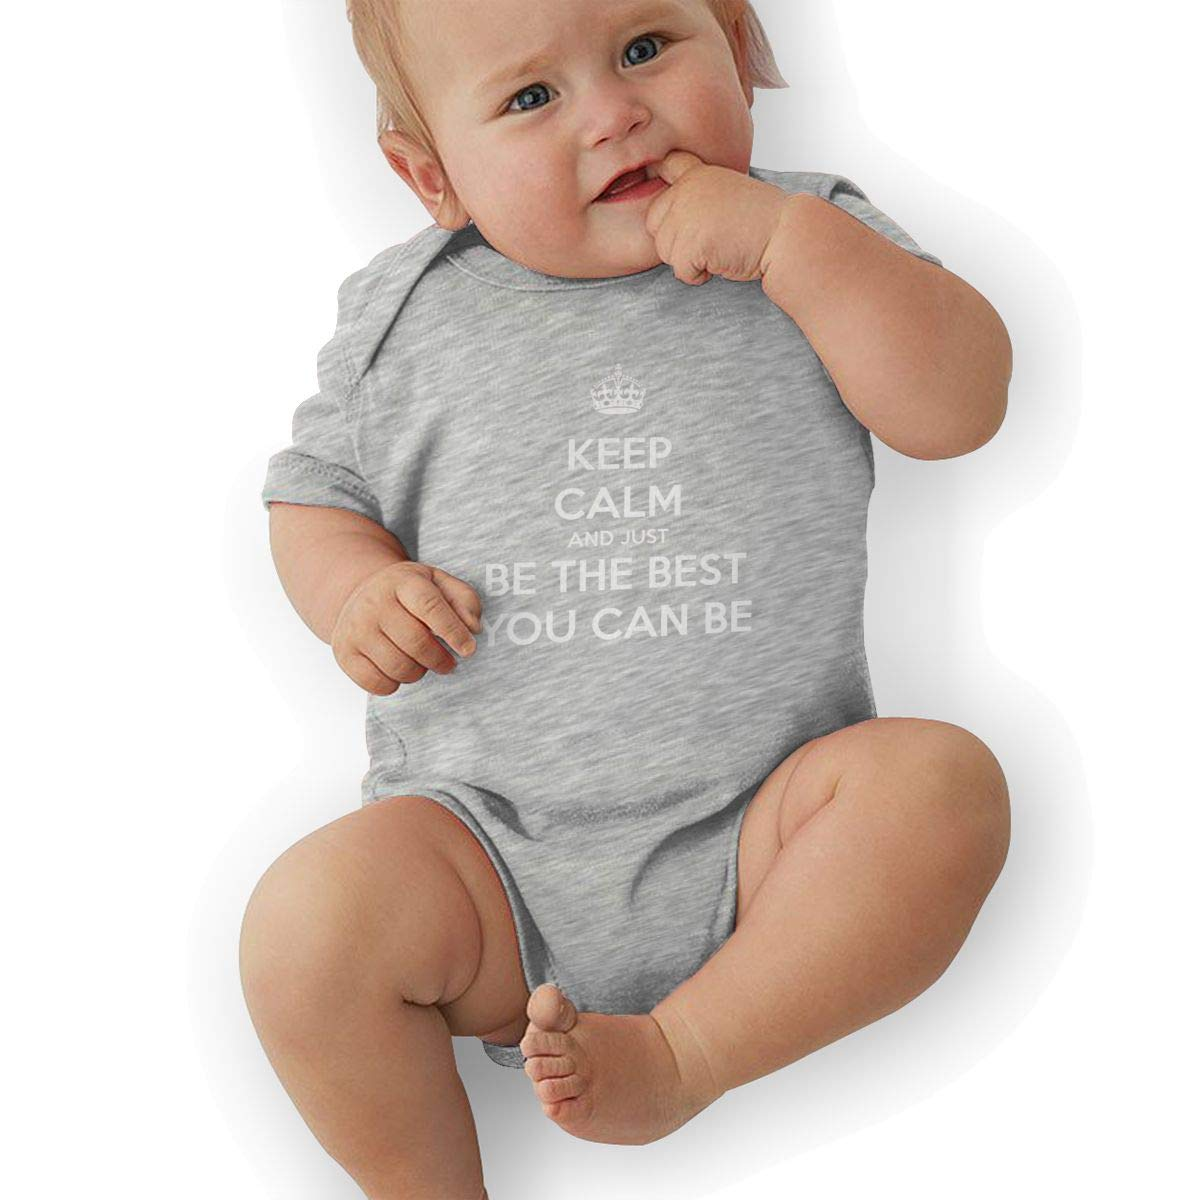 Newborn Baby Boys Bodysuit Short-Sleeve Onesie Keep Calm and Just Be The Best You Can Be Print Outfit Spring Pajamas